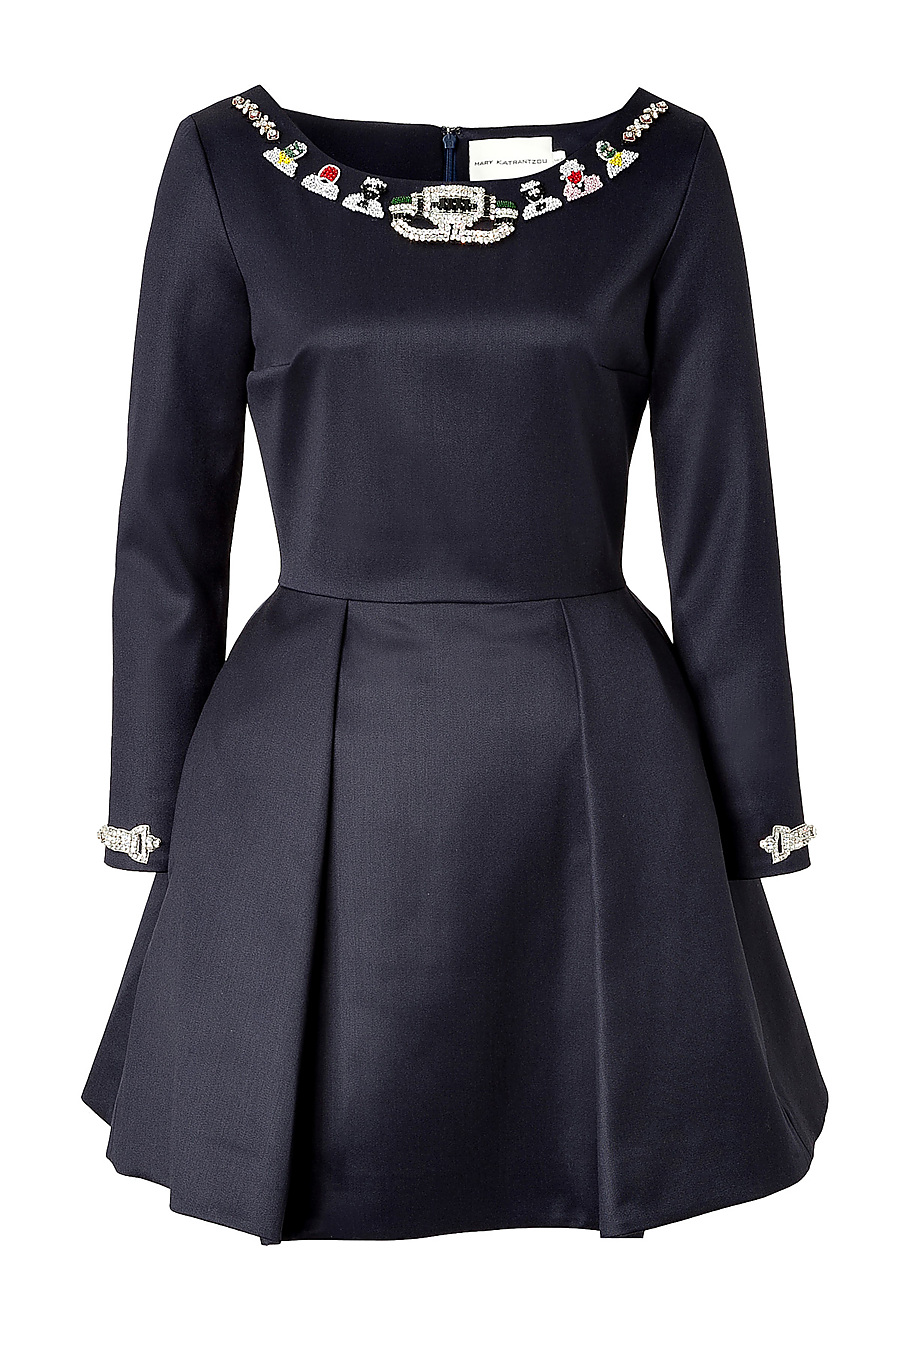 Mary Katrantzou Wool Embellished Copelia Dress